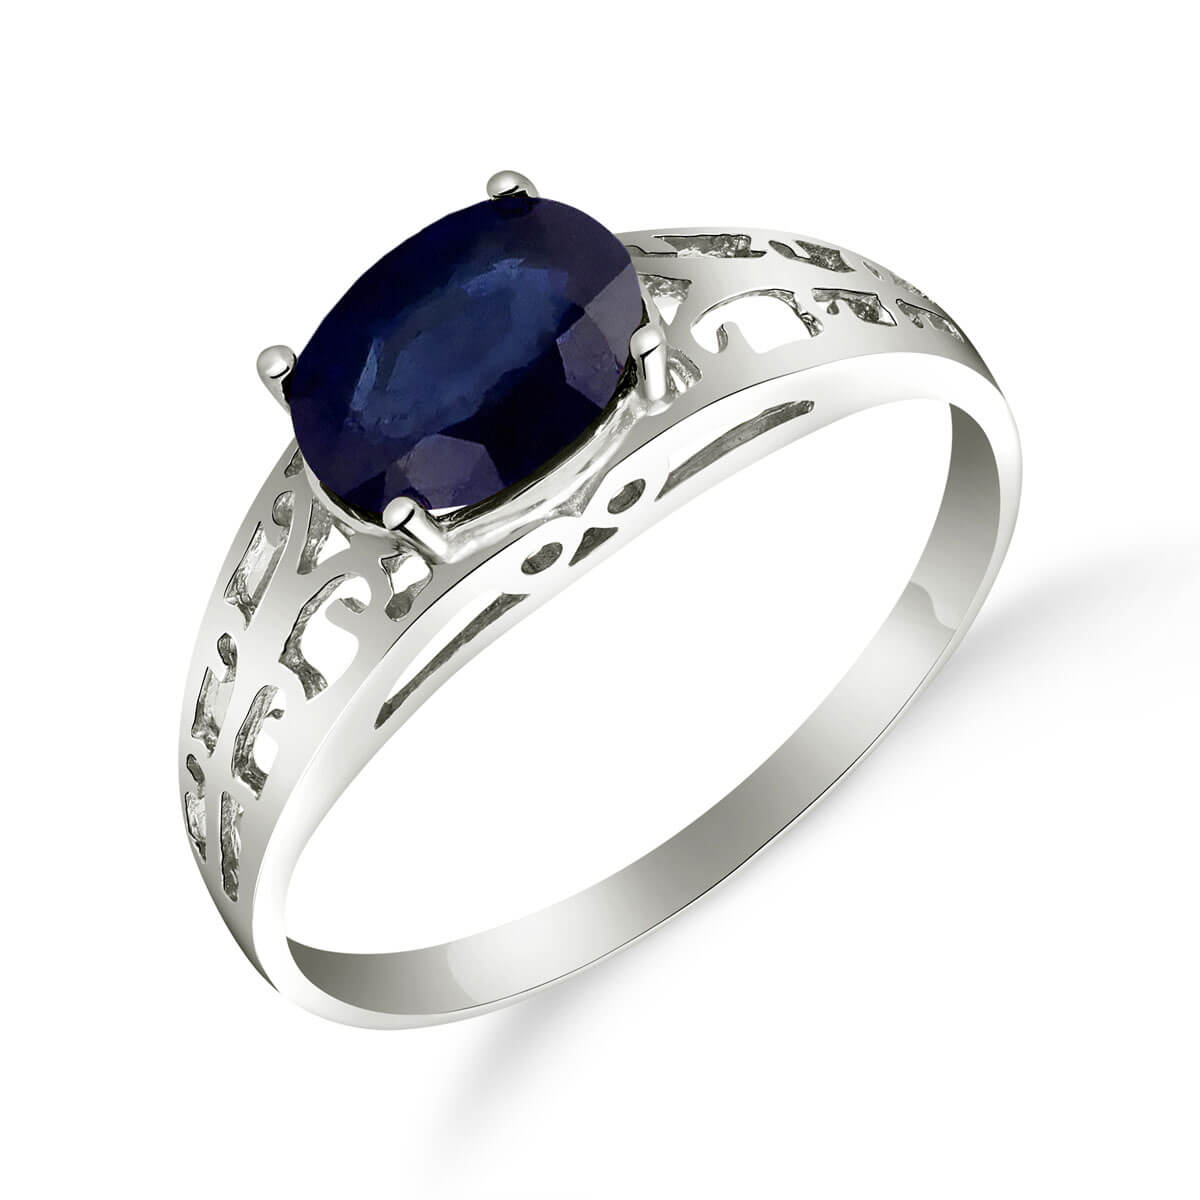 Sapphire Catalan Filigree Ring 1.15 ct in 9ct White Gold